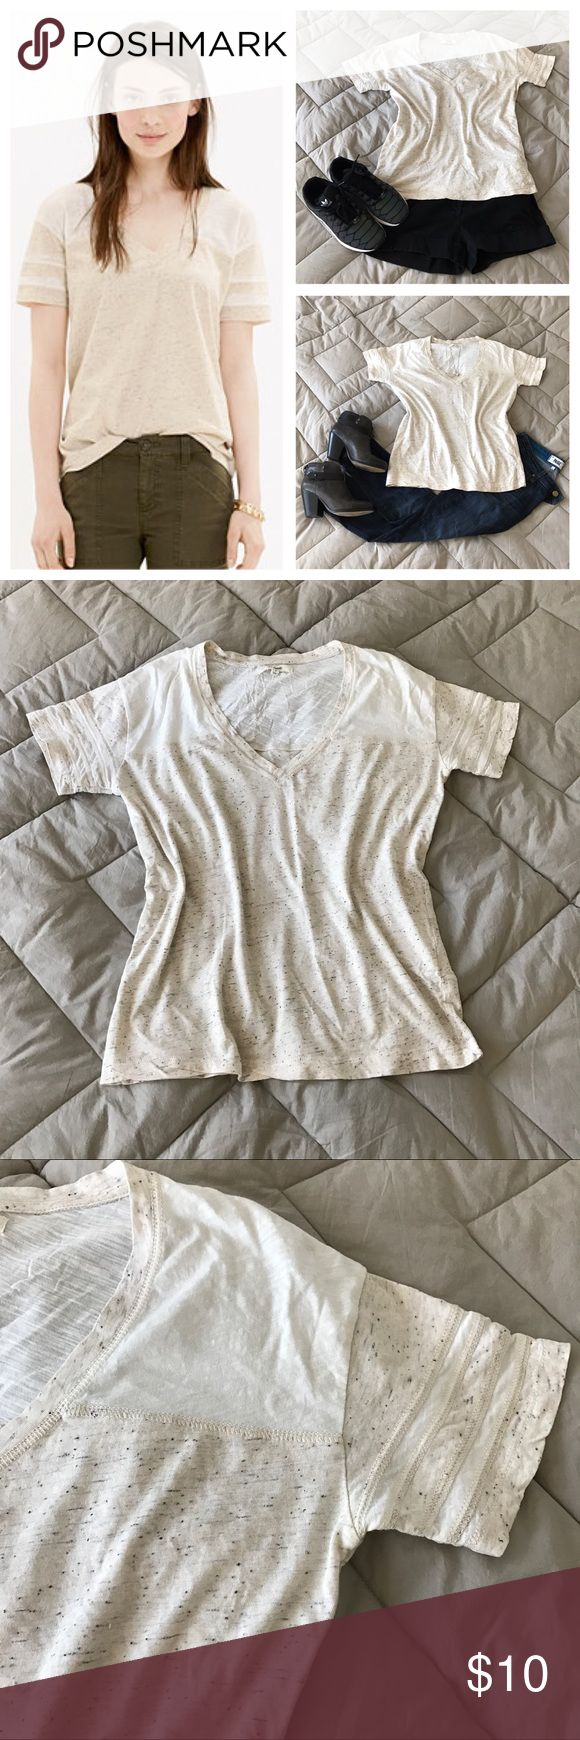 "⭐️ Madewell T-shirt, size S White and ivory colorblock V-neck t-shirt from Madewell. Marled or heathered fabric texture, inset varsity stripe details on sleeves. Relaxed fit.  🍈 Size small - bust 40"", waist 38"", length 23"" 🍈 Condition: good - label tag was torn but was hand stitched together as shown in photo 🍈 Material: 100% cotton Madewell Tops Tees - Short Sleeve"